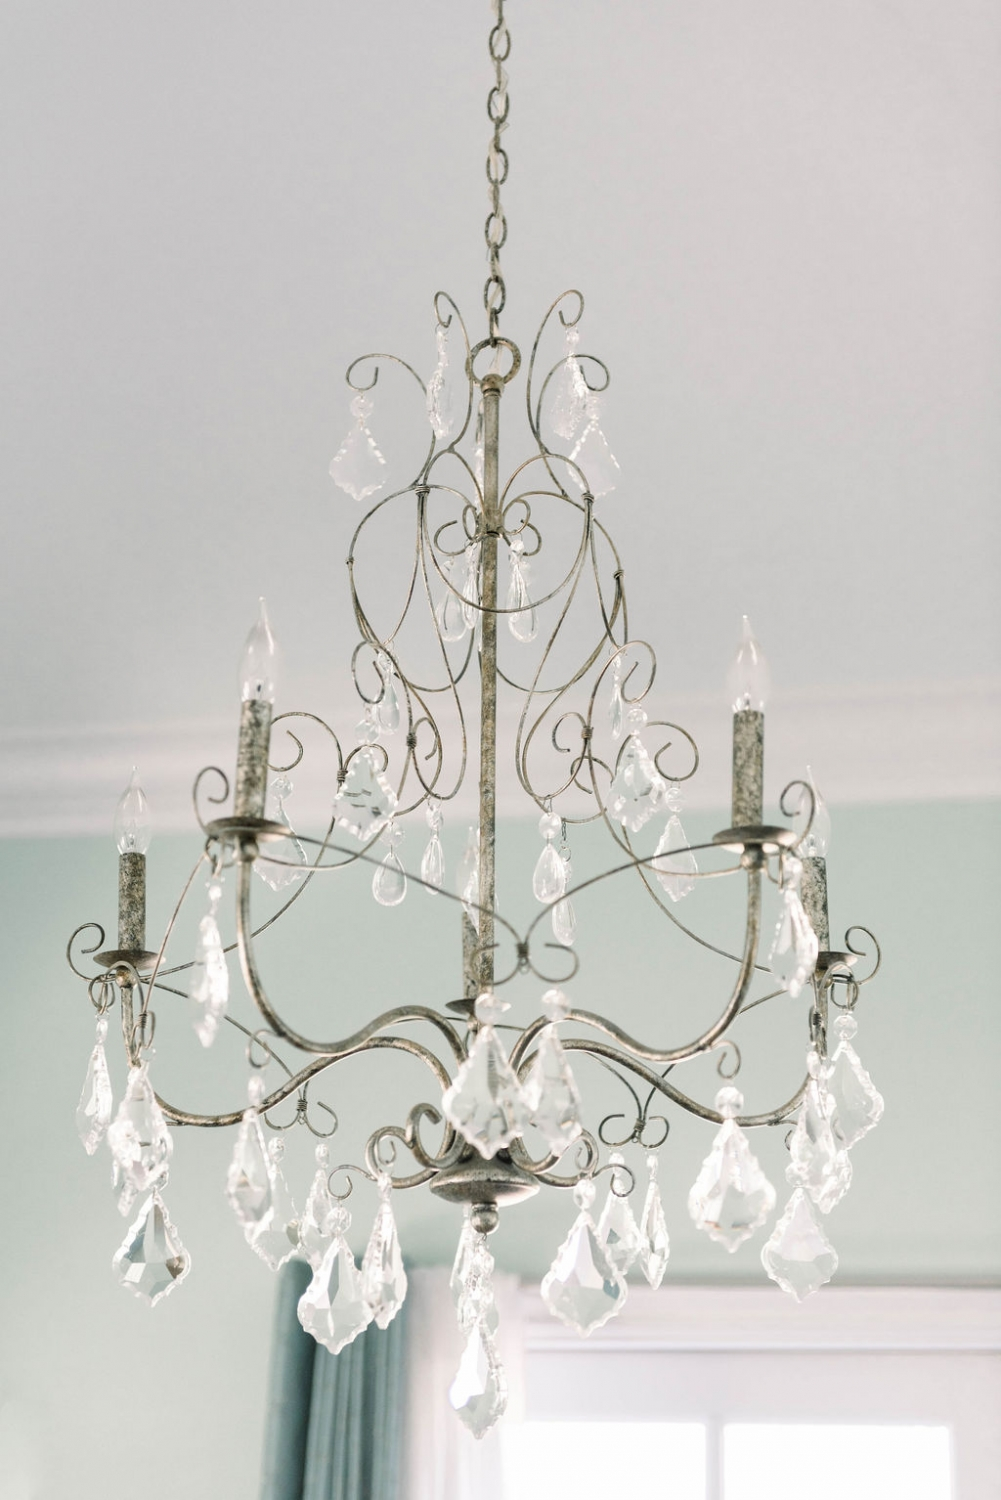 Chrystal chandelier at Avensole winery